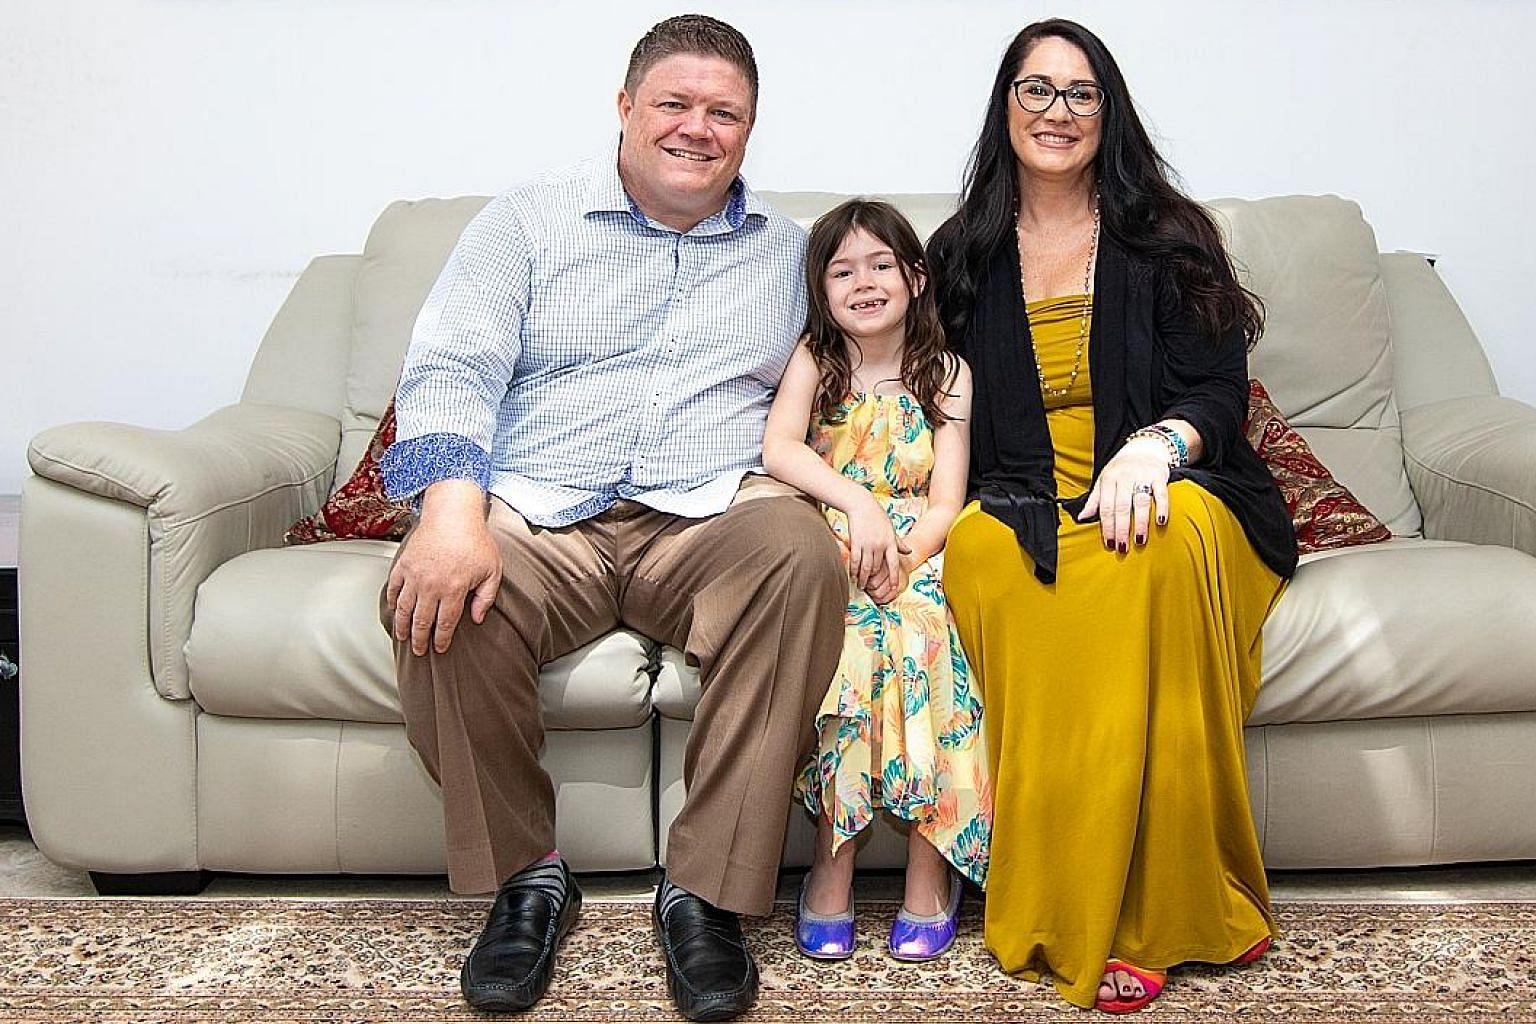 Mr Chris Brankin with his wife, Andrea, and daughter, Georgia. The TD Ameritrade Singapore chief executive says providing for his family has always been a priority. He invests mainly in equities and uses options to supplement returns and protect posi